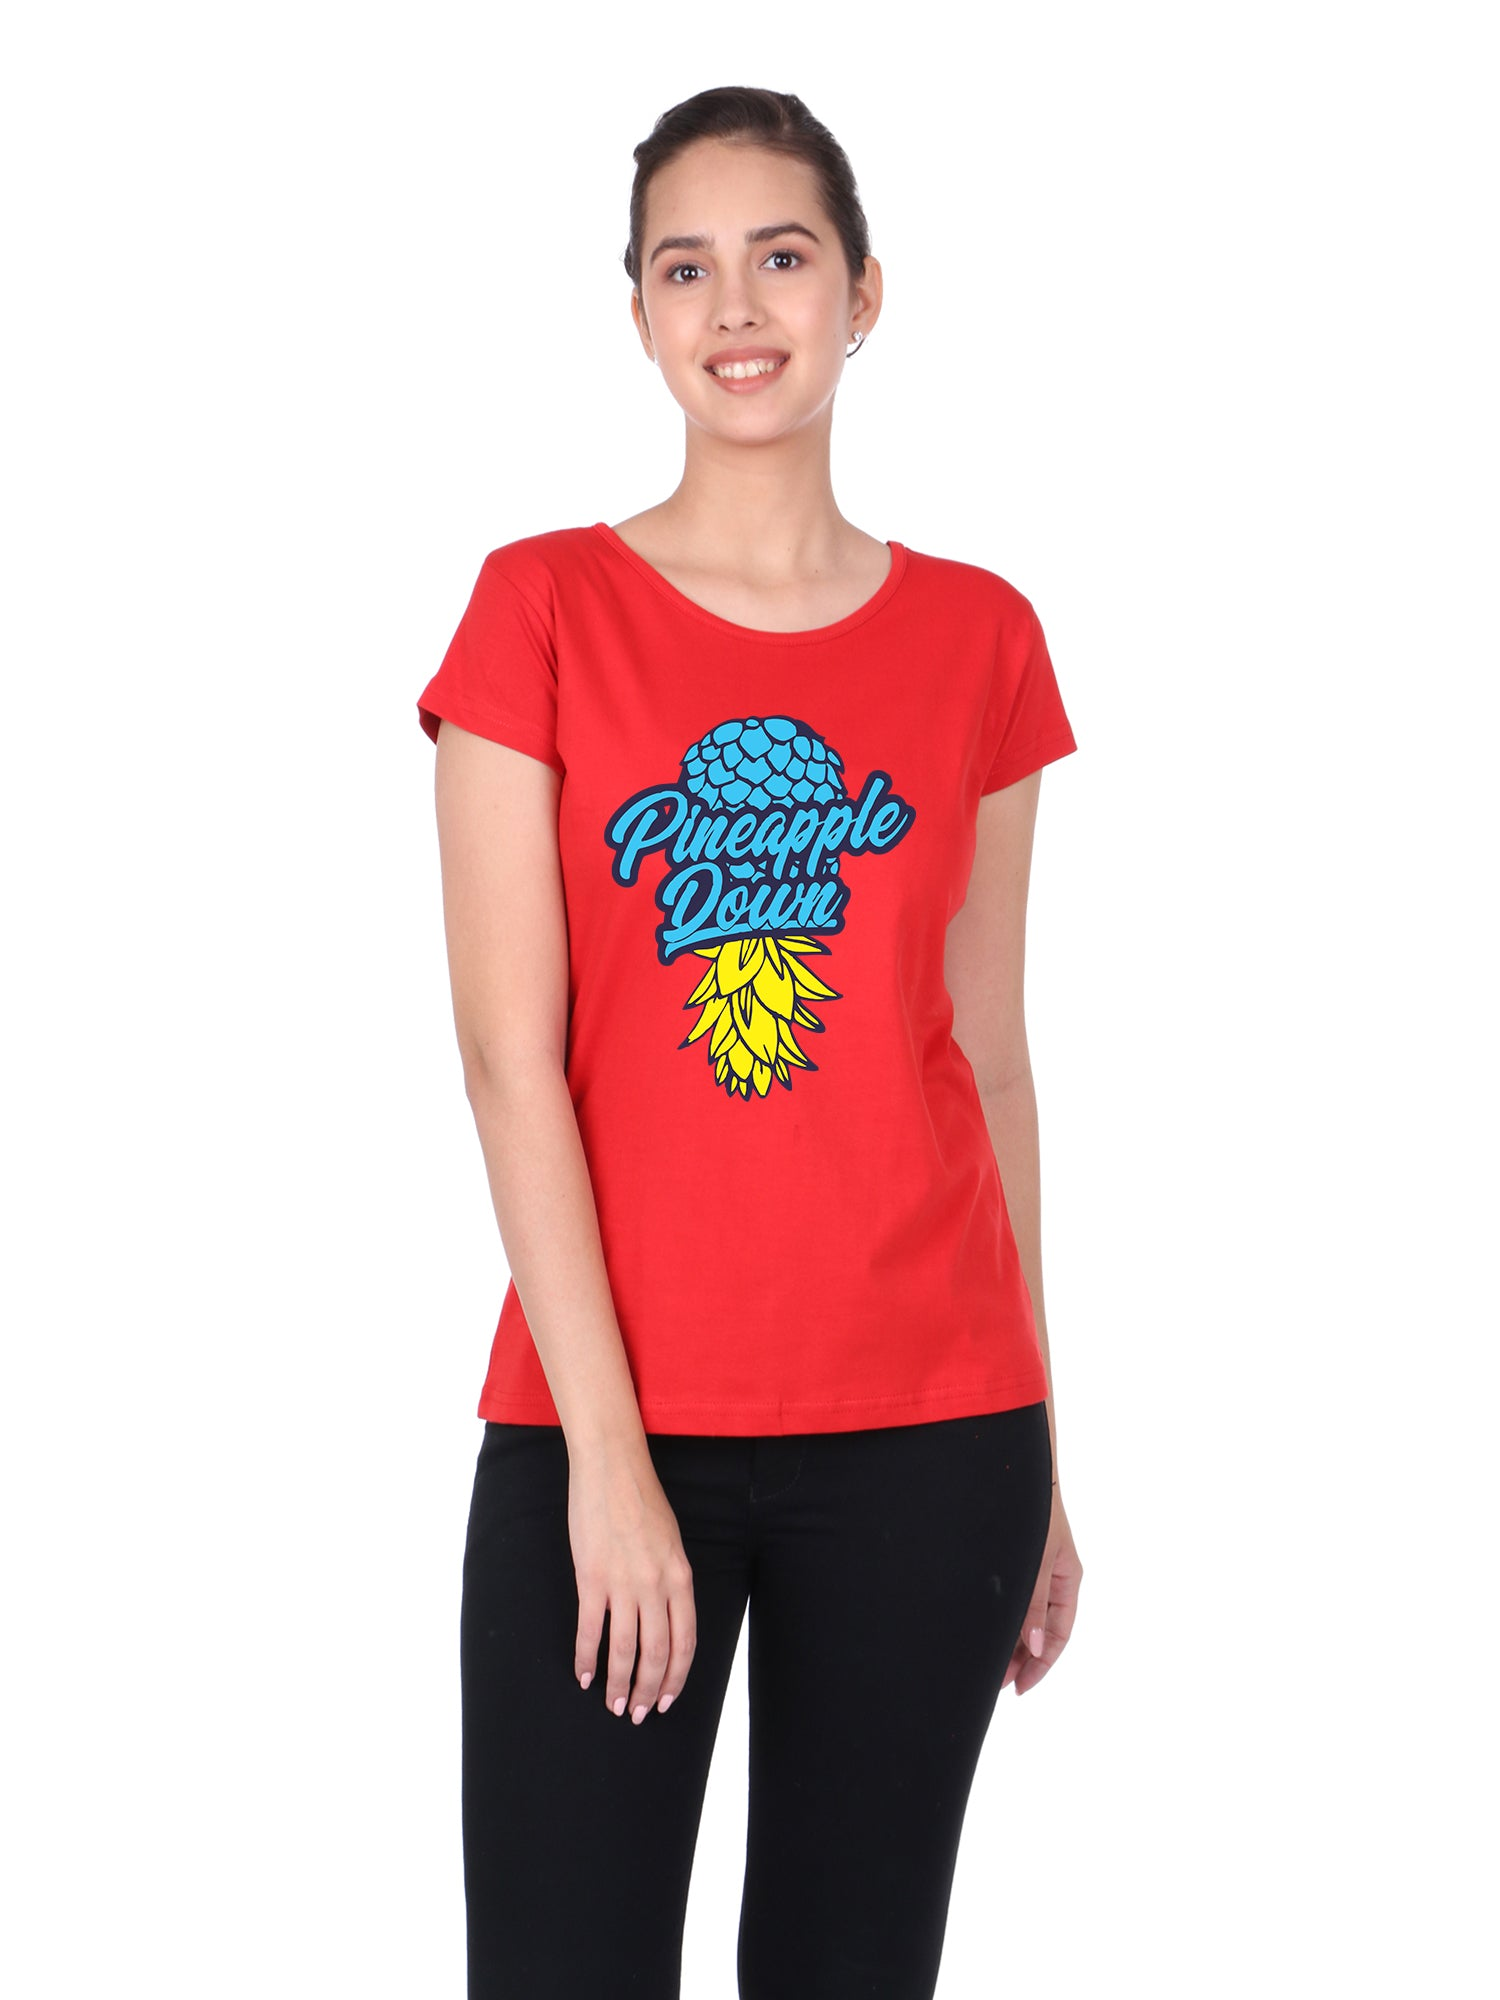 Bueno Life Women's Cotton Printed T-Shirt - Pineapple Down (Red)